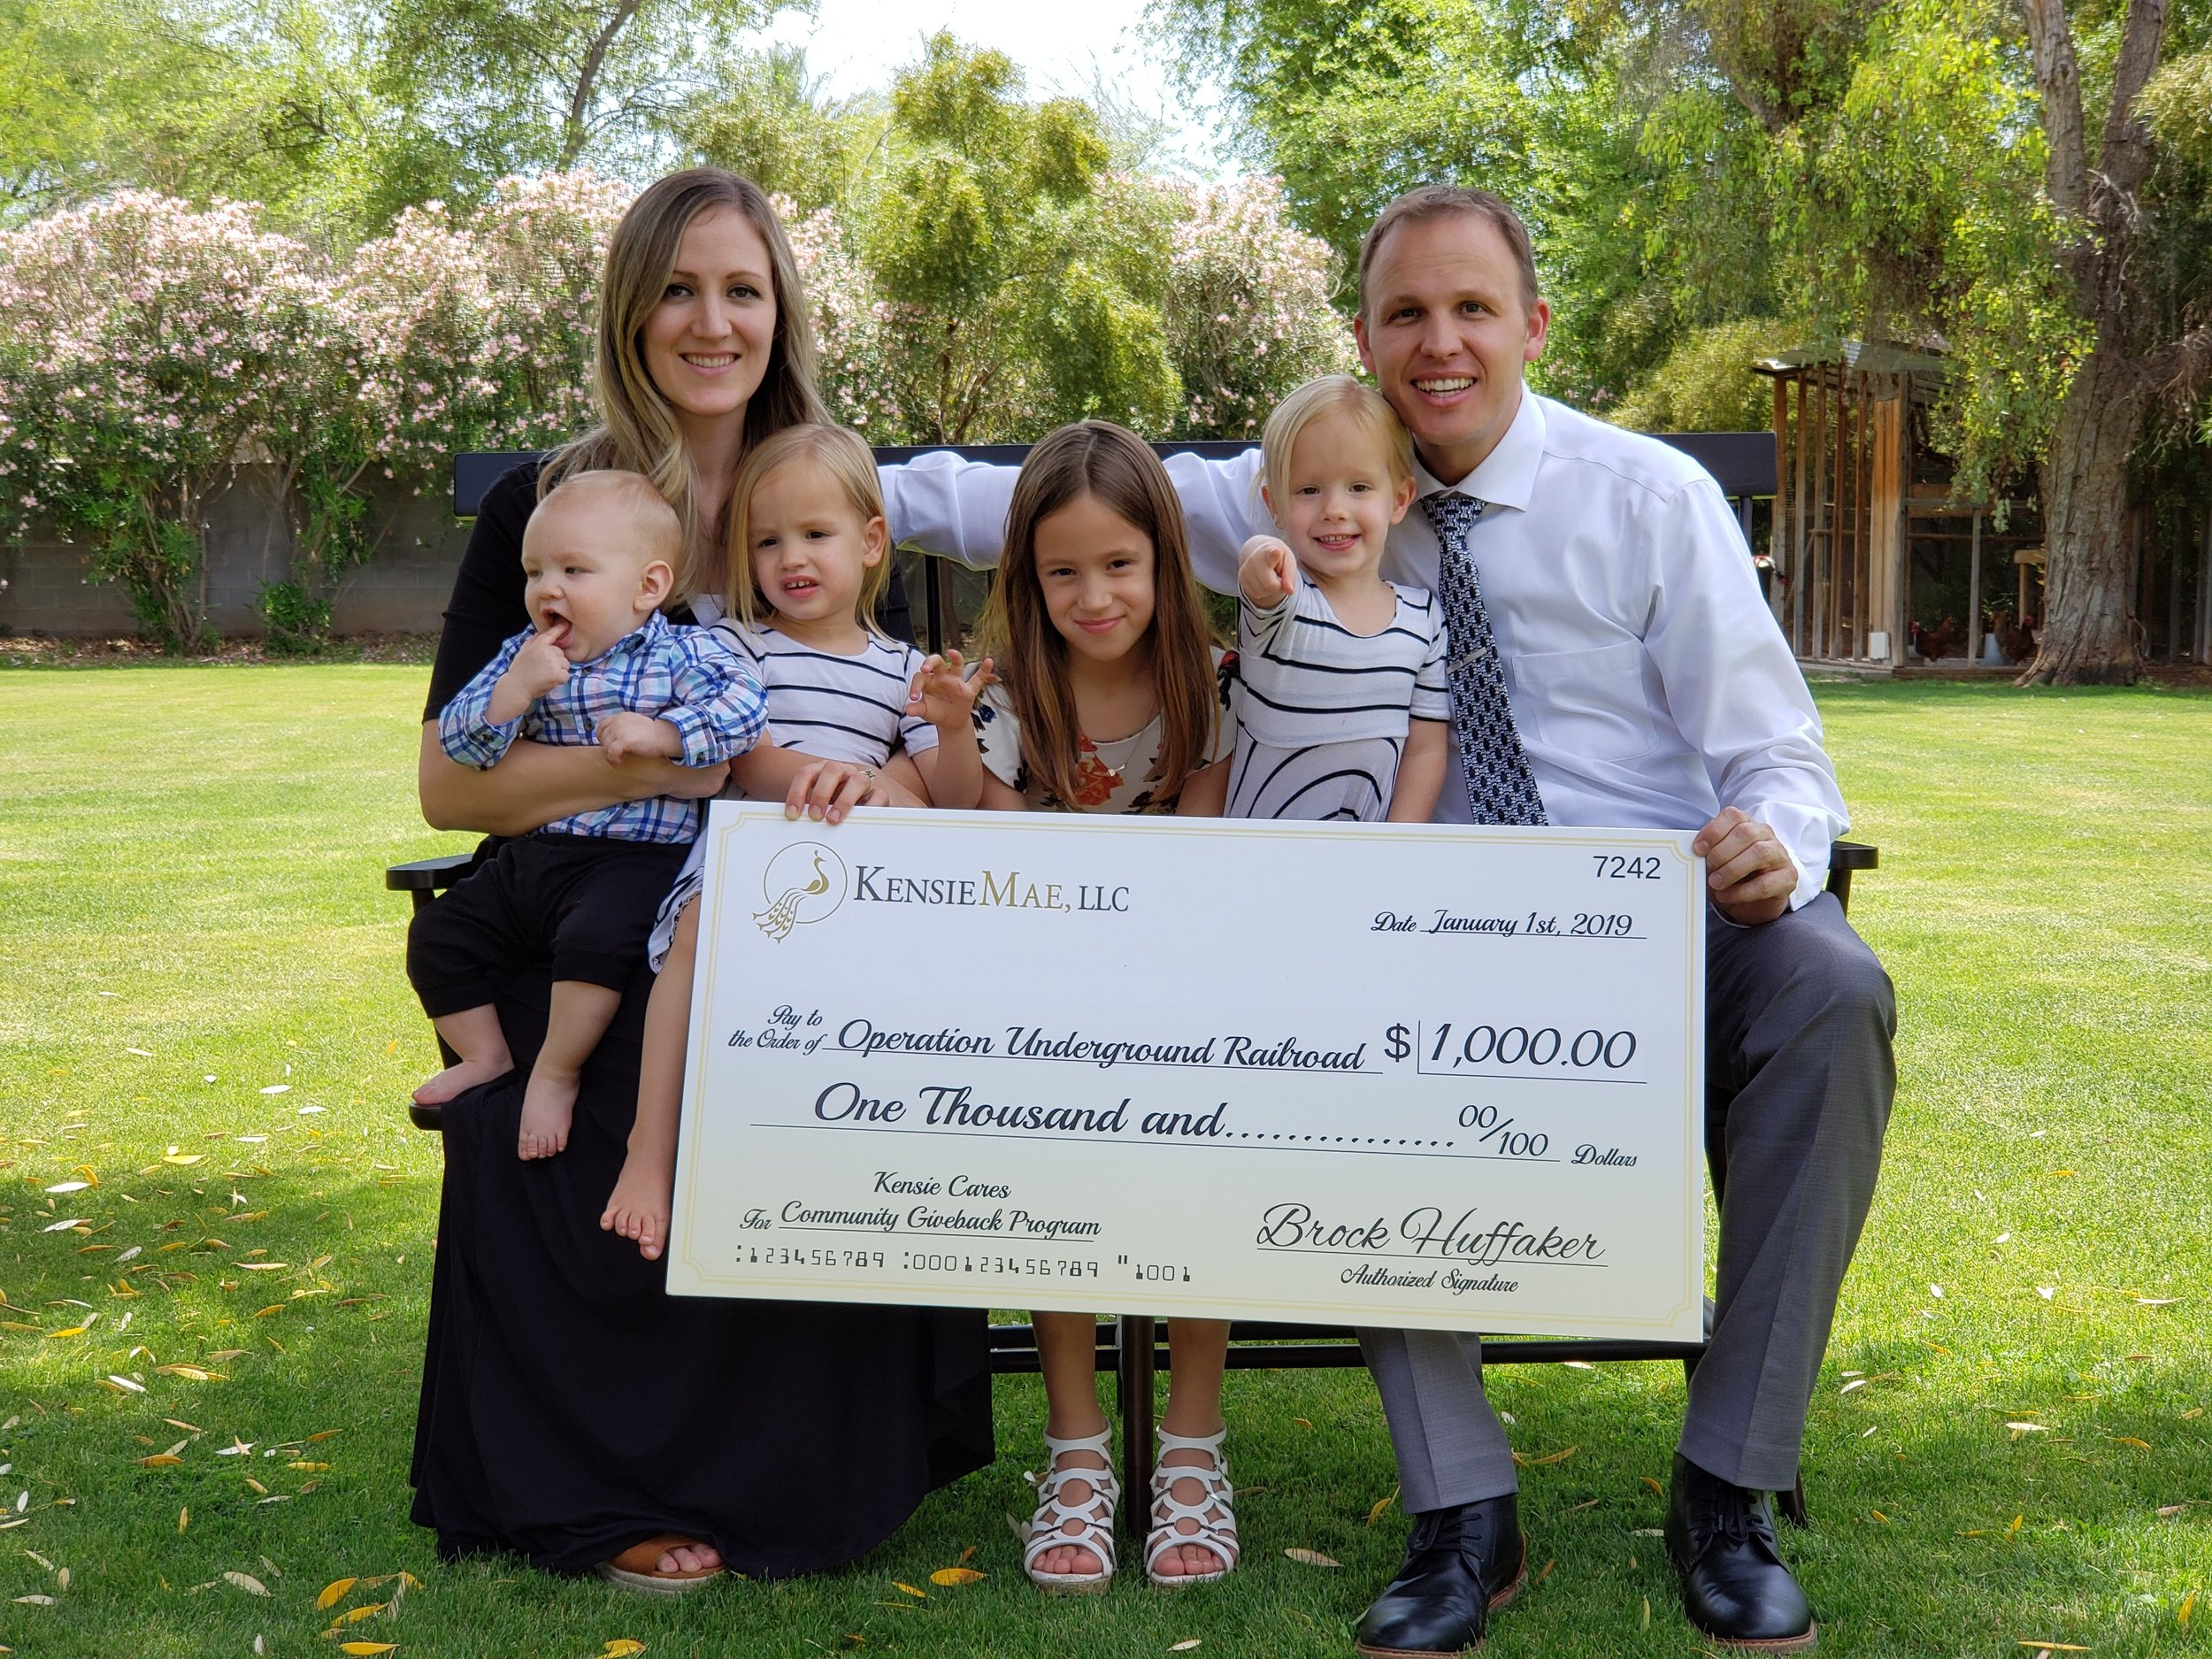 KensieMae/KensieMae Technologies CTO, Brock Huffaker, along with his family with their Kensie Cares donation to Operation Underground Railroad.